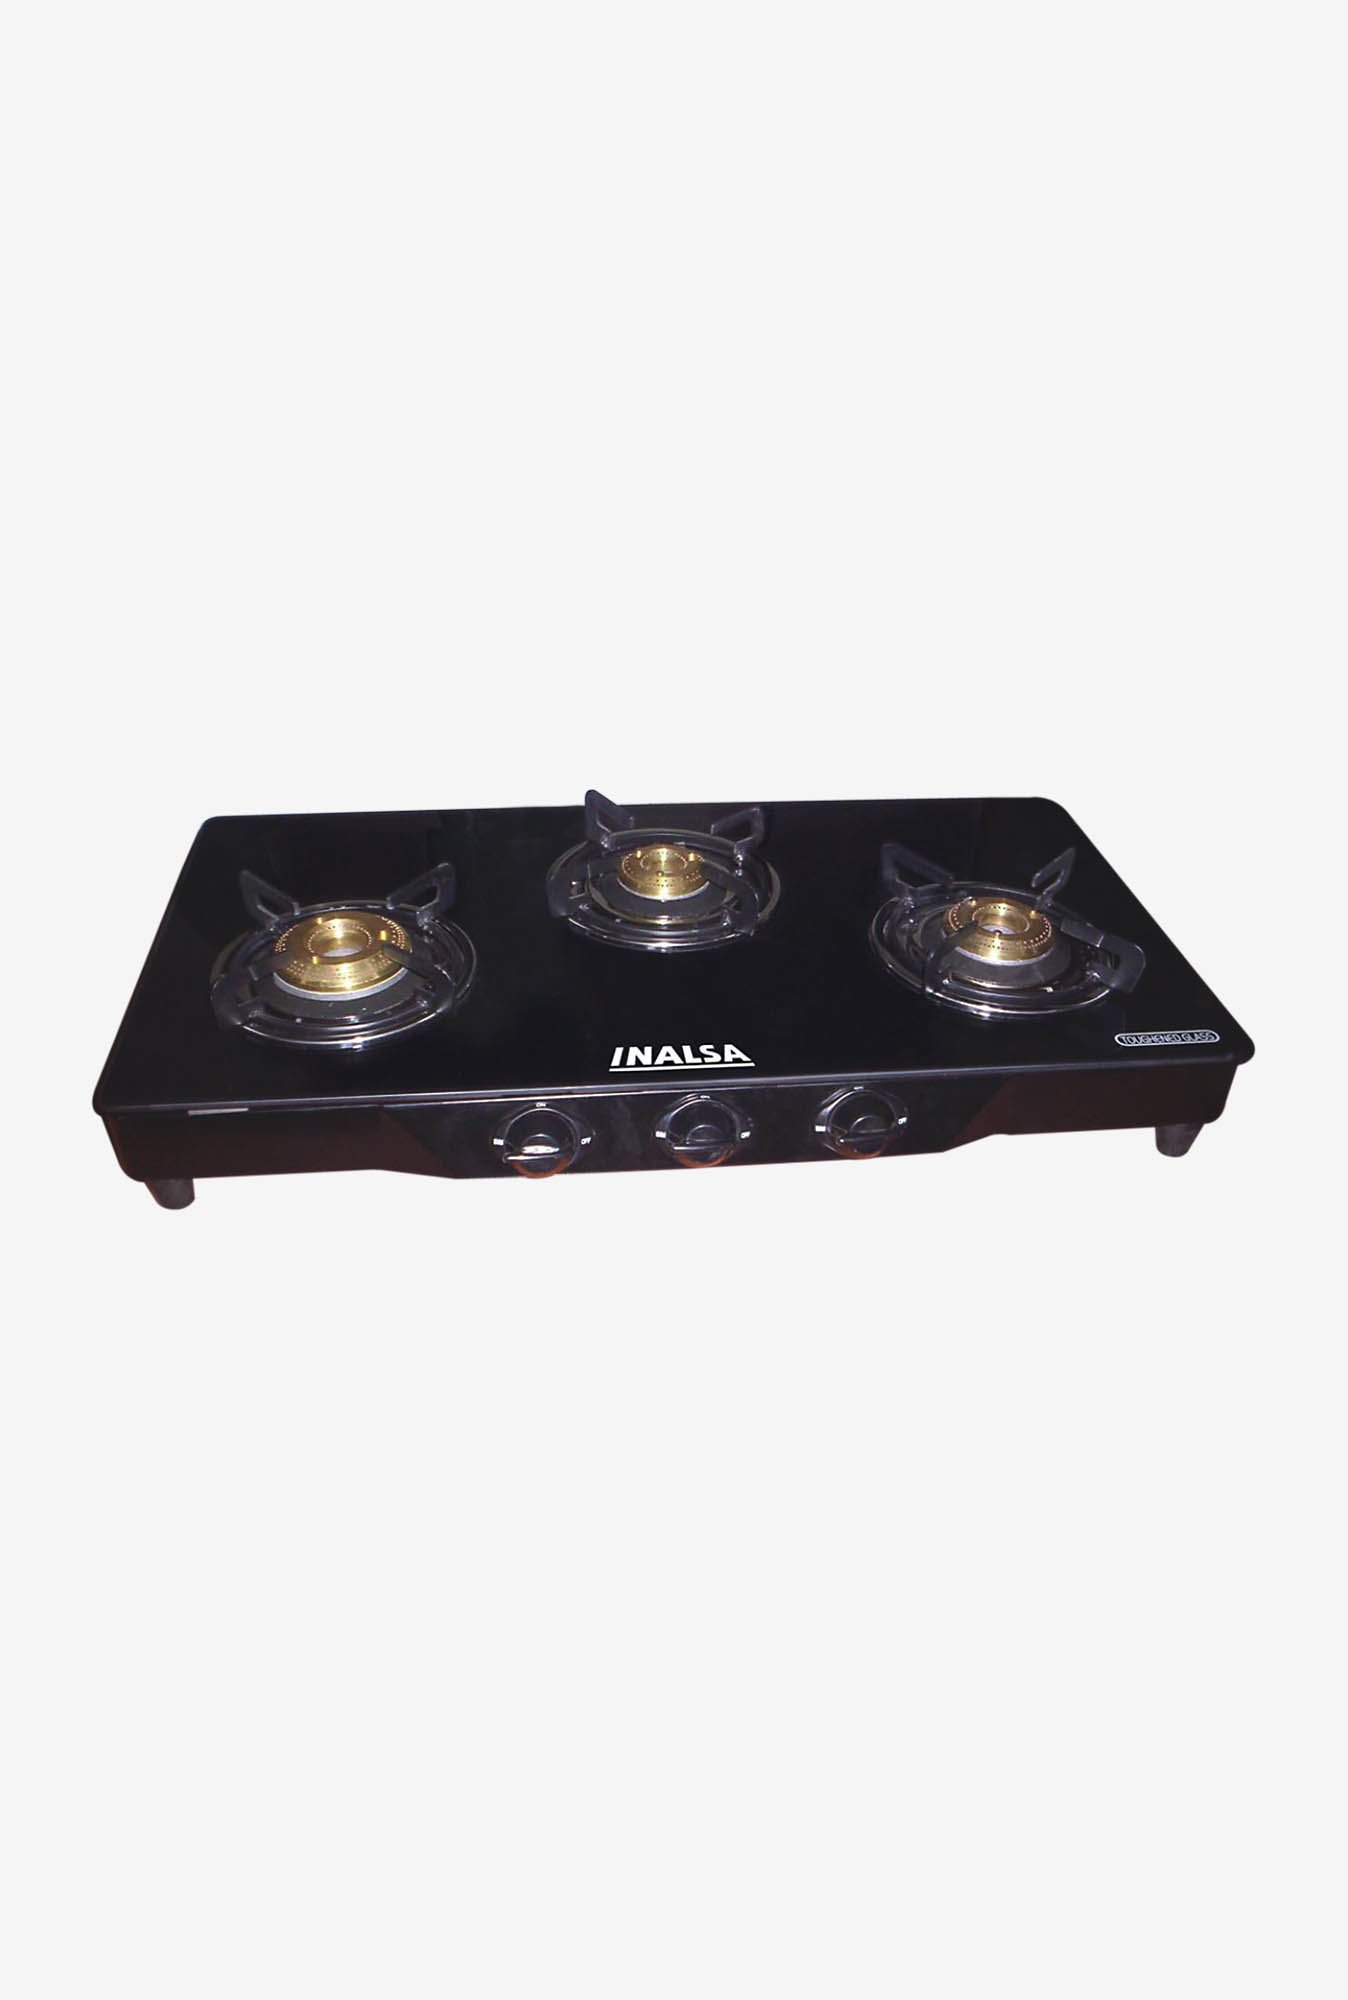 Inalsa Spark 3 Burner Gas Cooktop Black